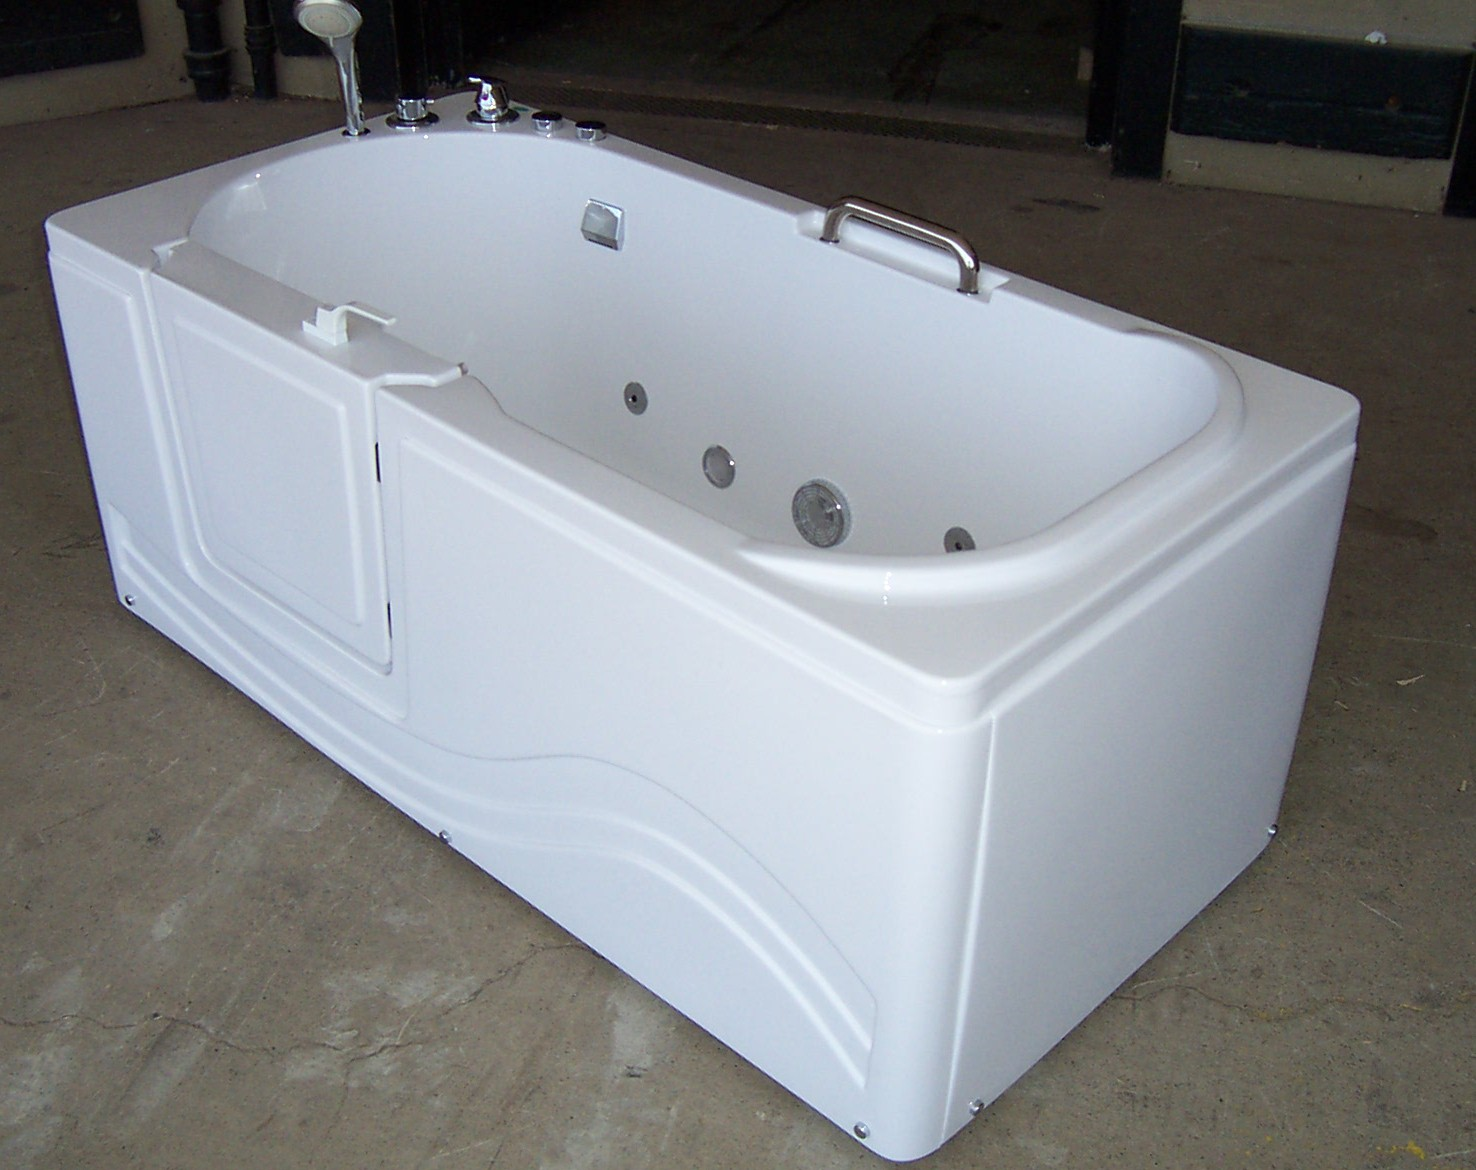 Luxury spas and whirlpool bathtubs ow 9wo4 walk in tub for Luxury tubs